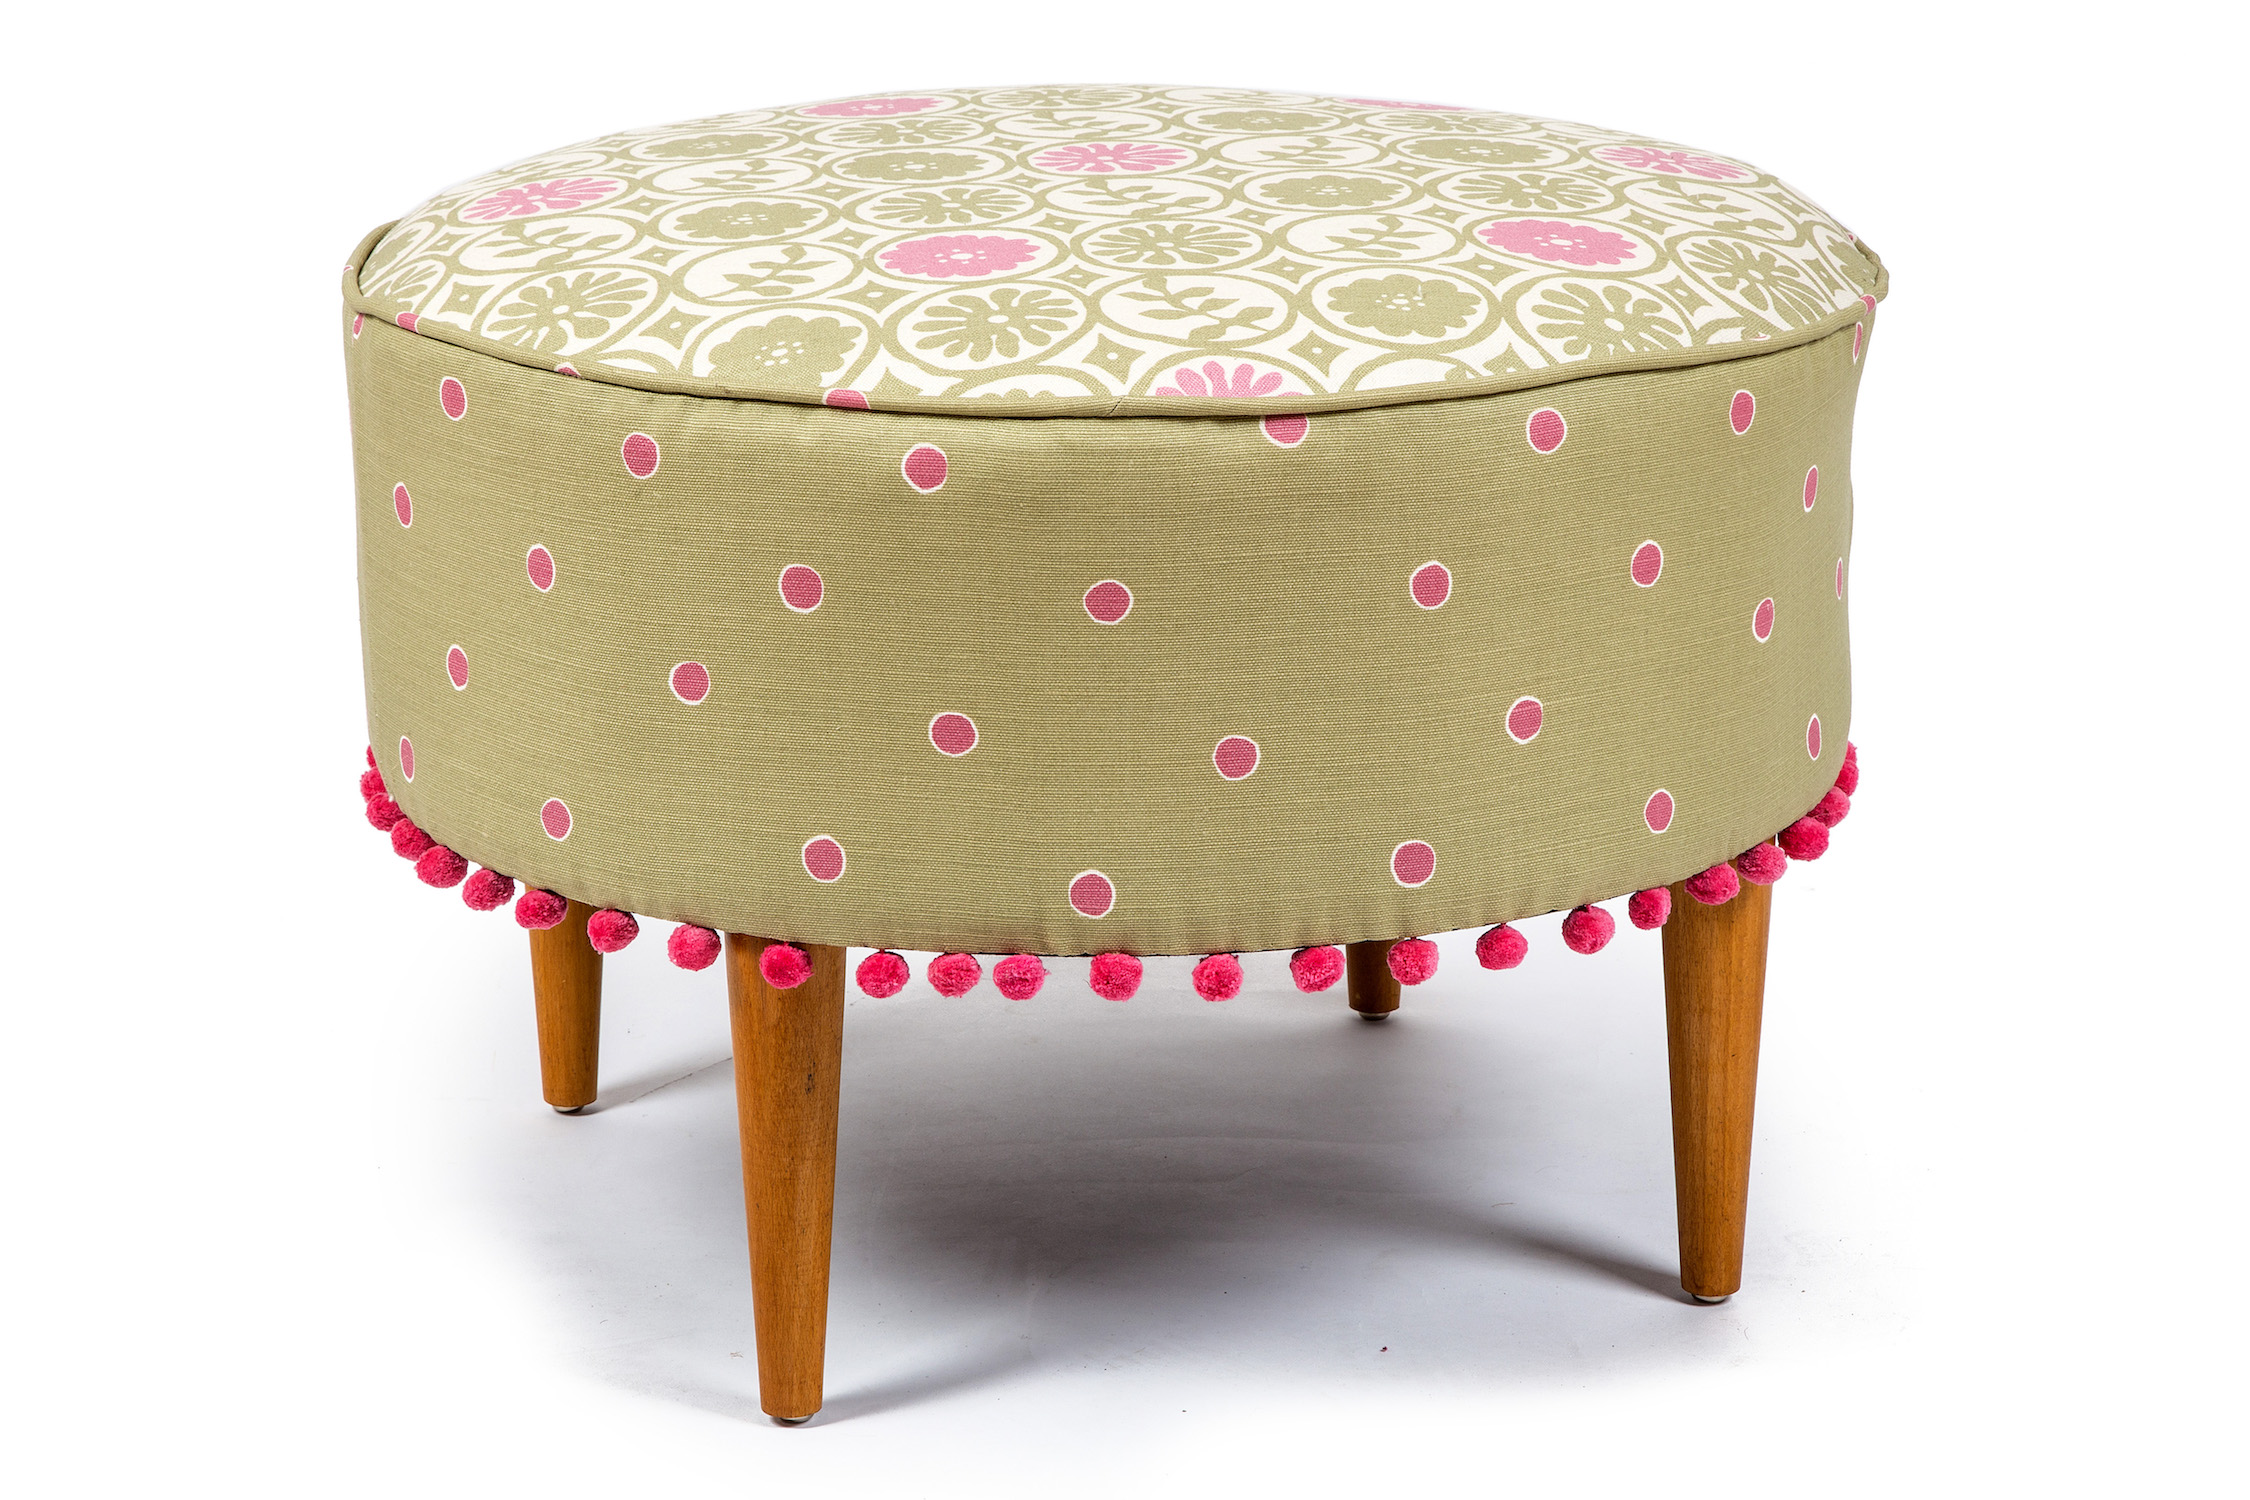 Round  Bordered Piped Footstool with Bobble Trim